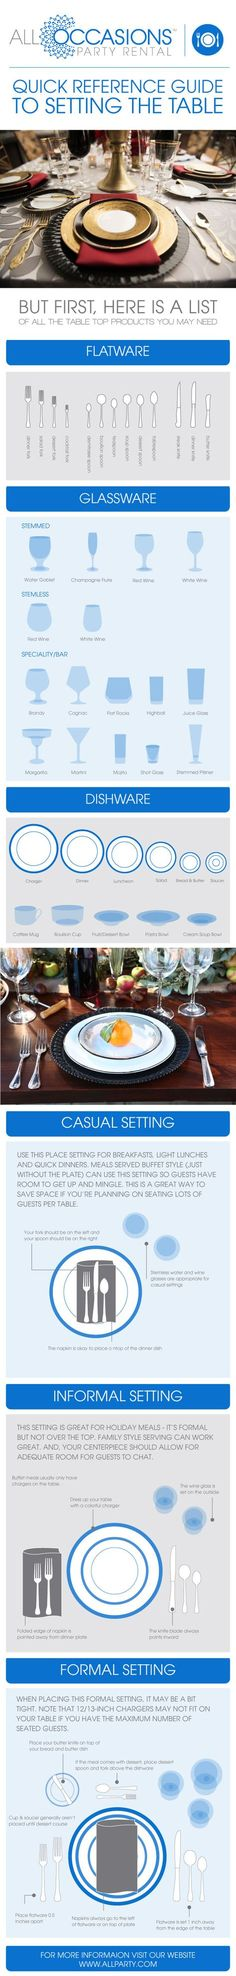 Quick Reference Guide to Setting the Table. Setting the Table Infographic! We try our best to bring you the very best in product selection. This is why we have close to 50 varieties of dishware collections, patterns and concepts, 21 full line collections of glassware and 18 flatware collections. We also understand that settin